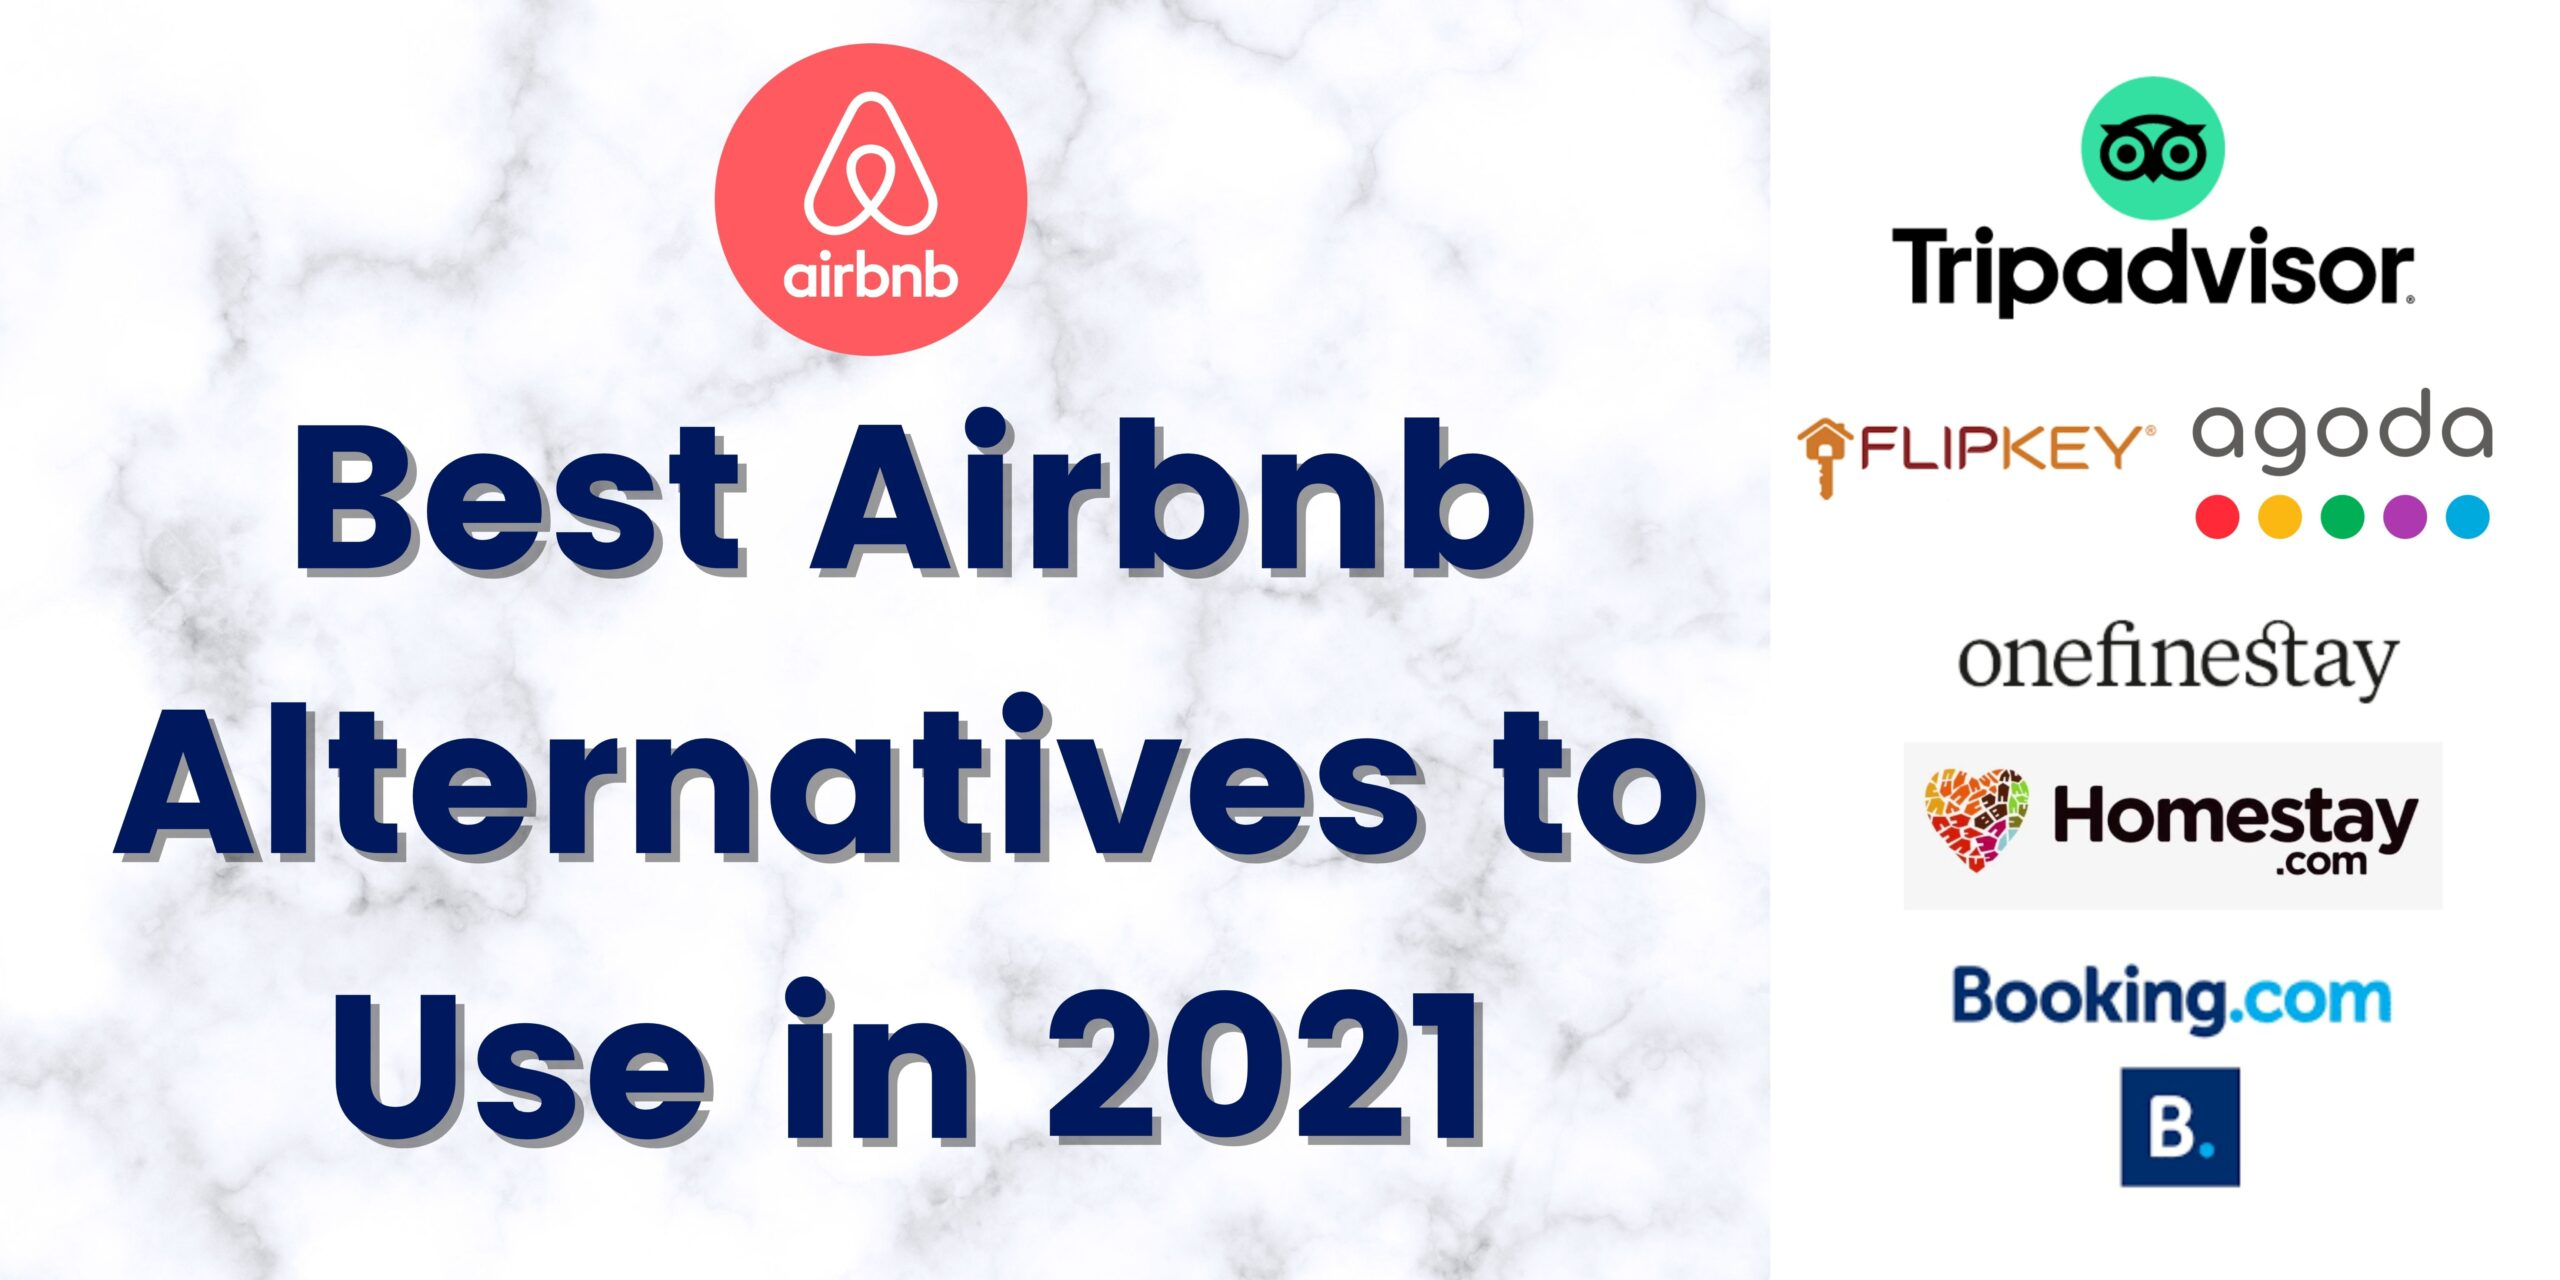 10 Best Airbnb Alternatives to Use in 2021